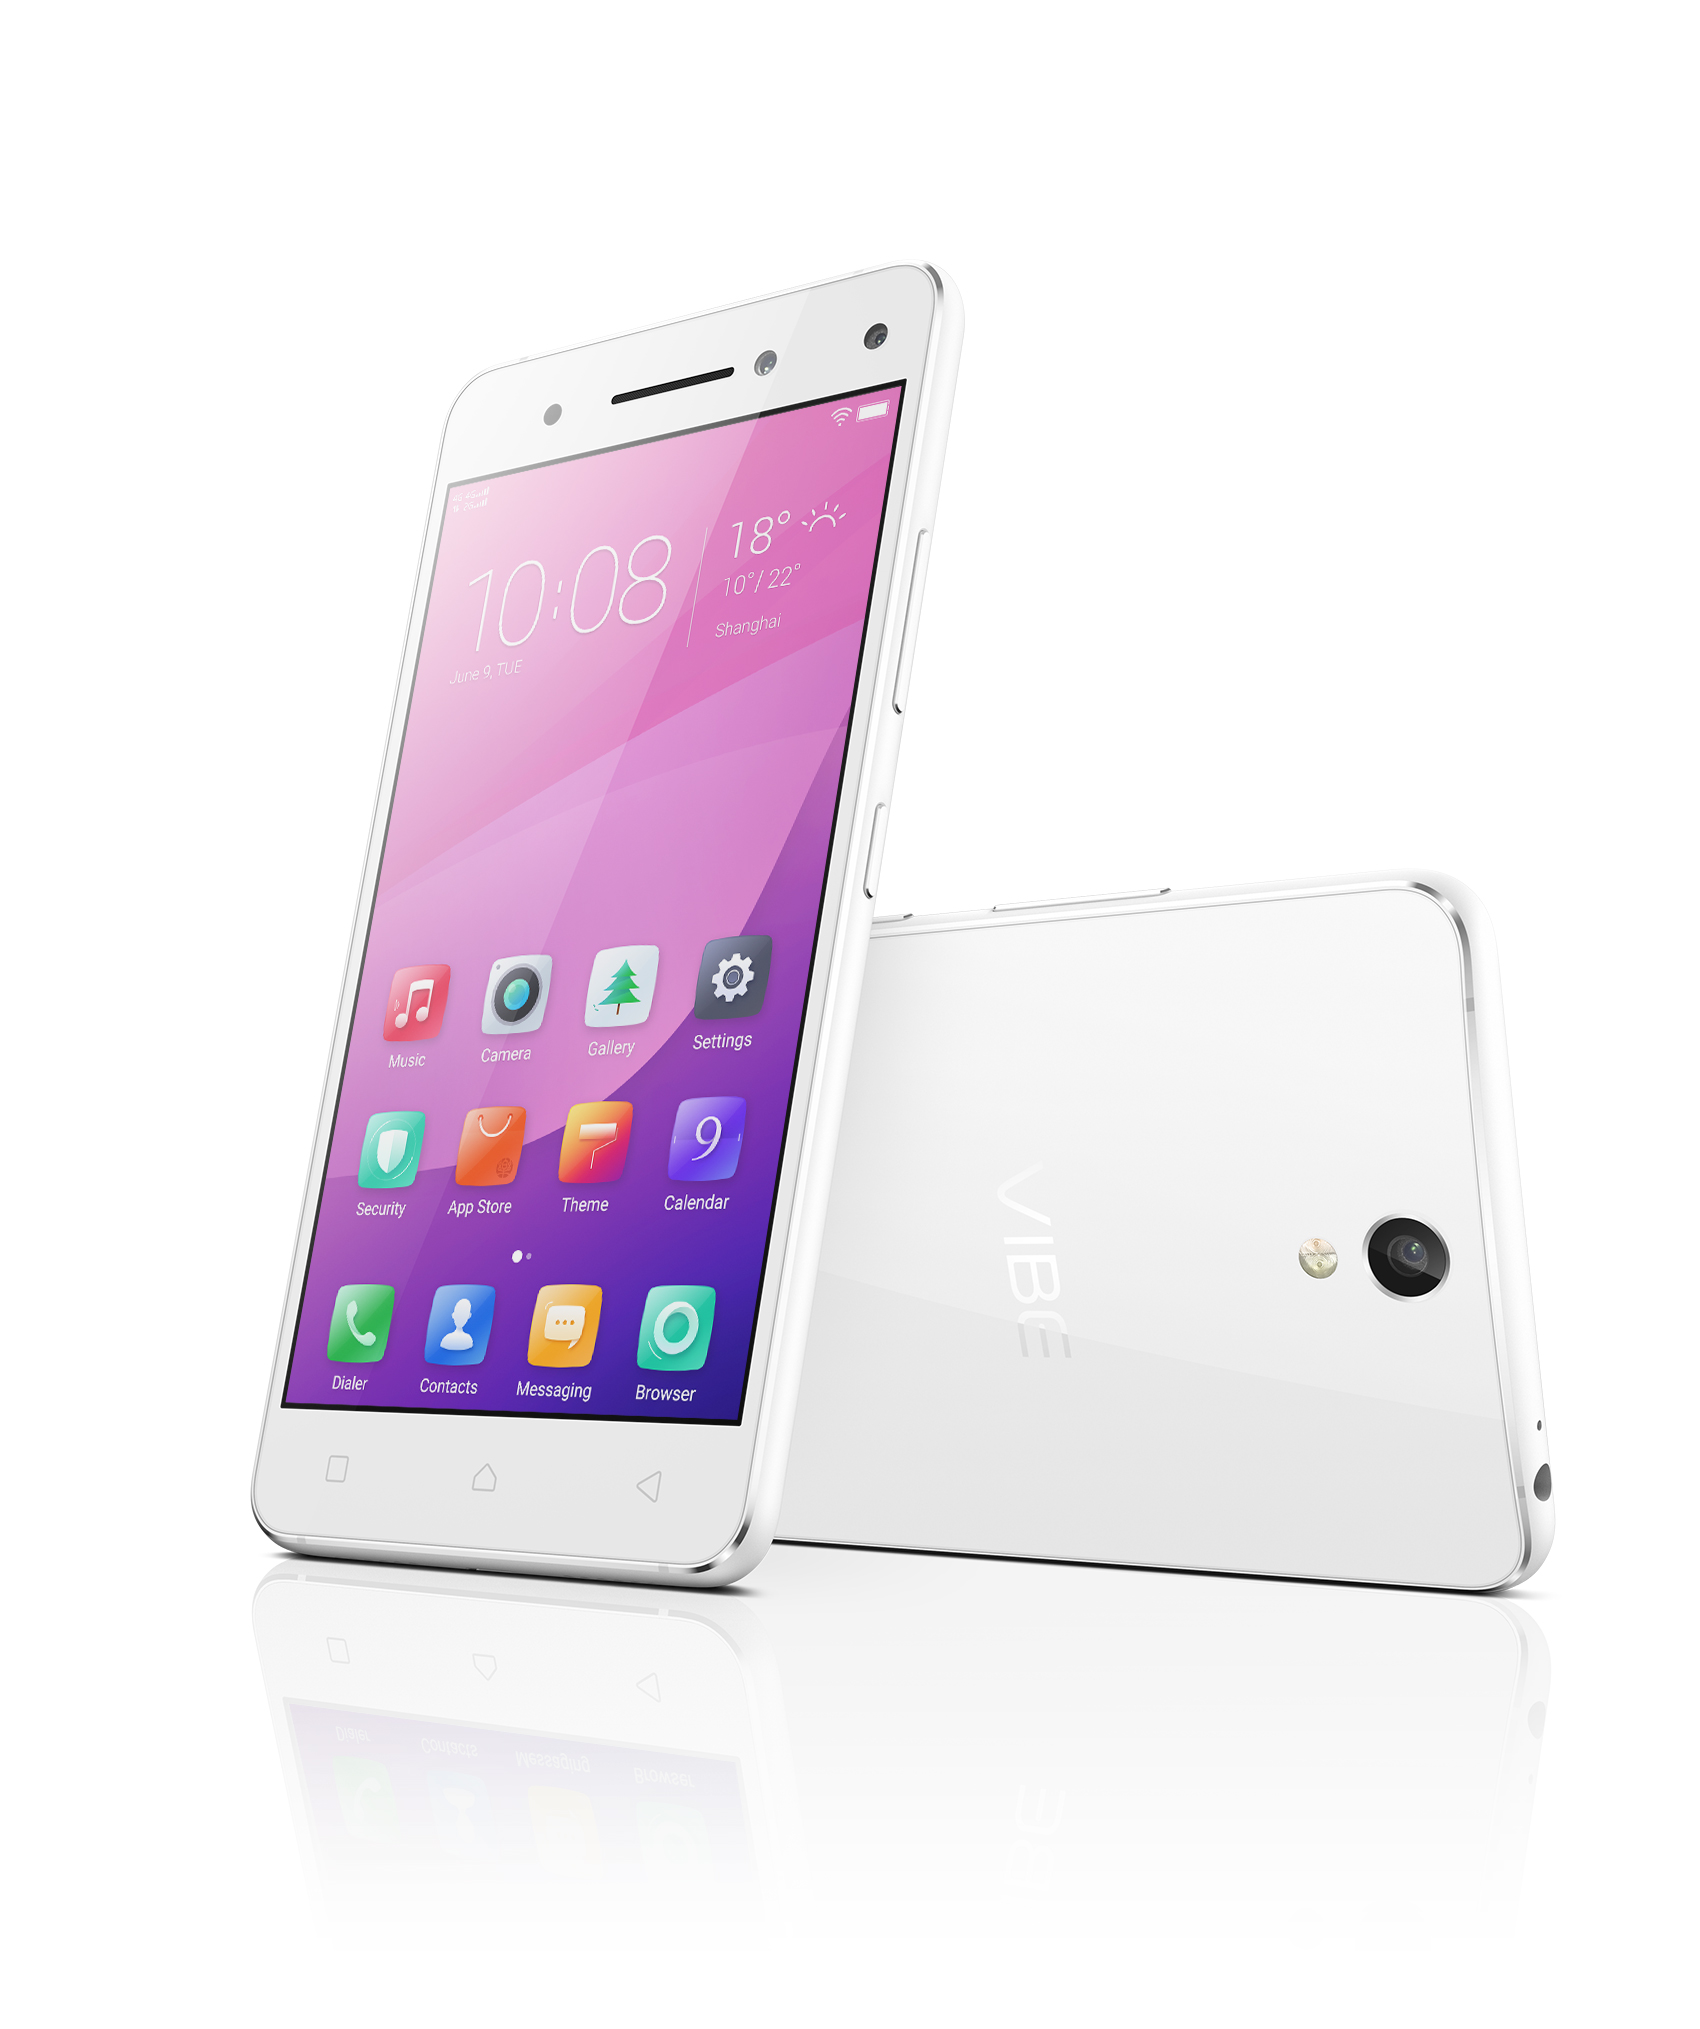 Lenovo brings the VIBE S1 and P1 to Singapore - HardwareZone